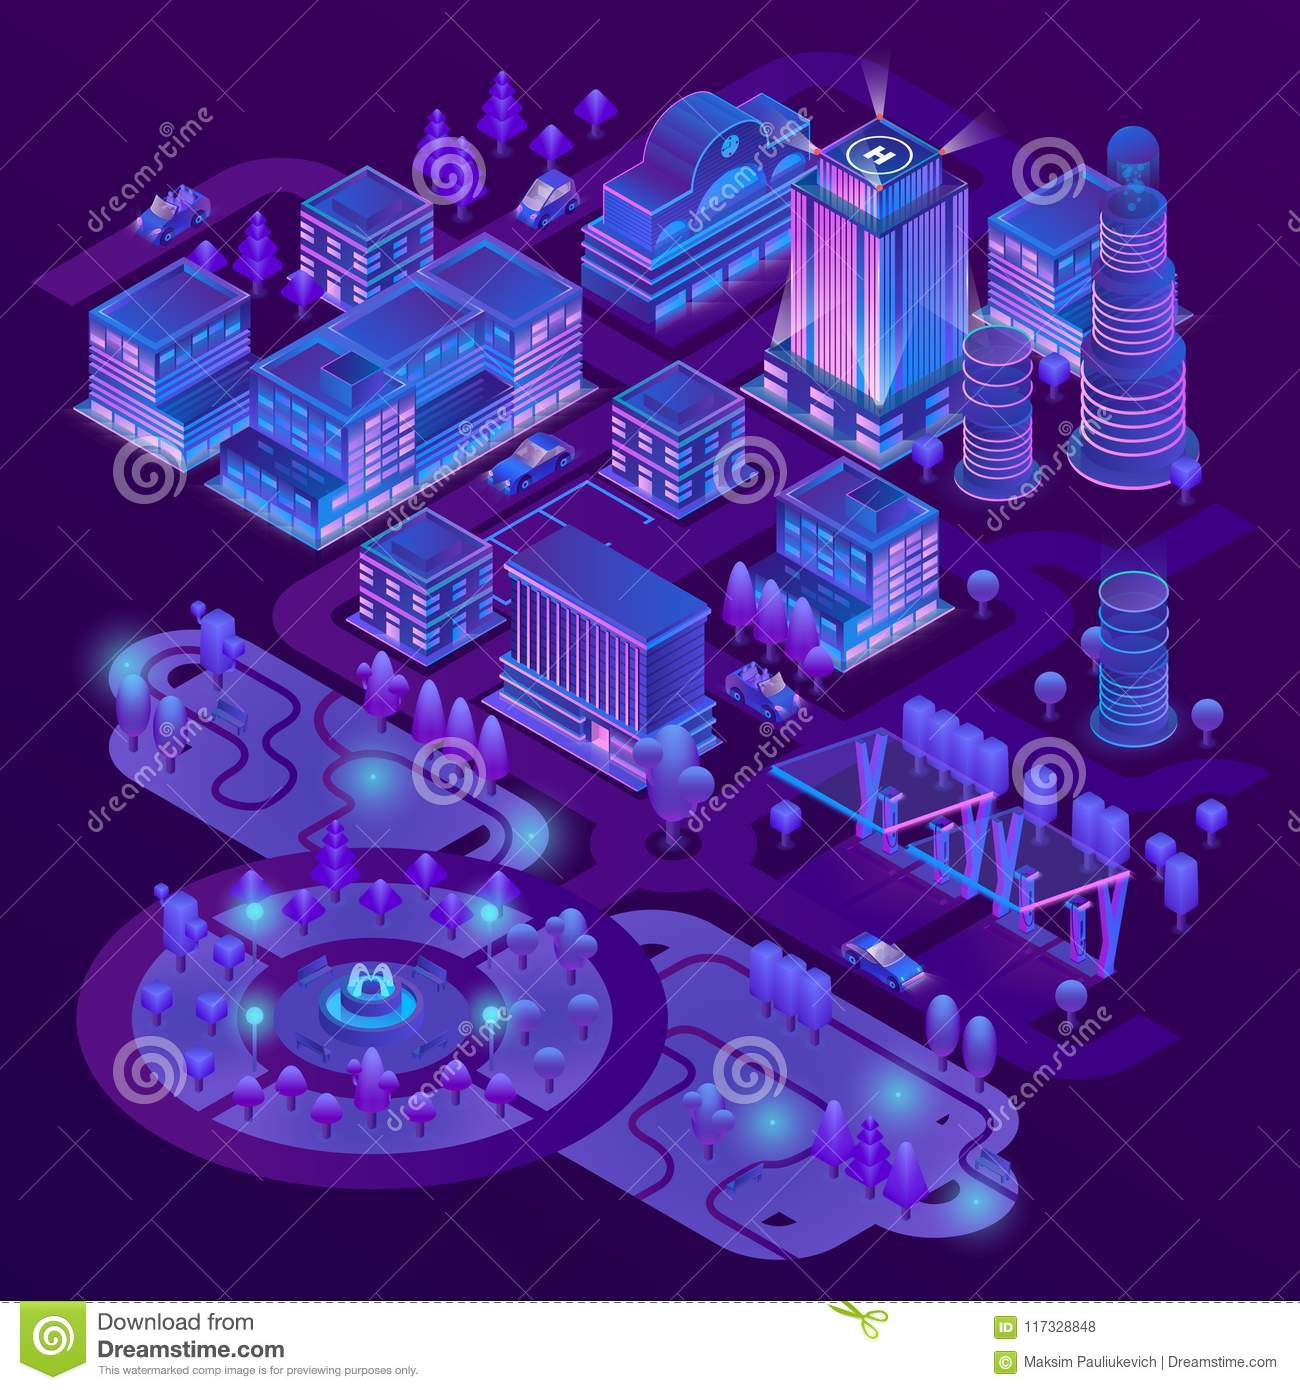 Vector 3d isometric megapolis in ultraviolet colors